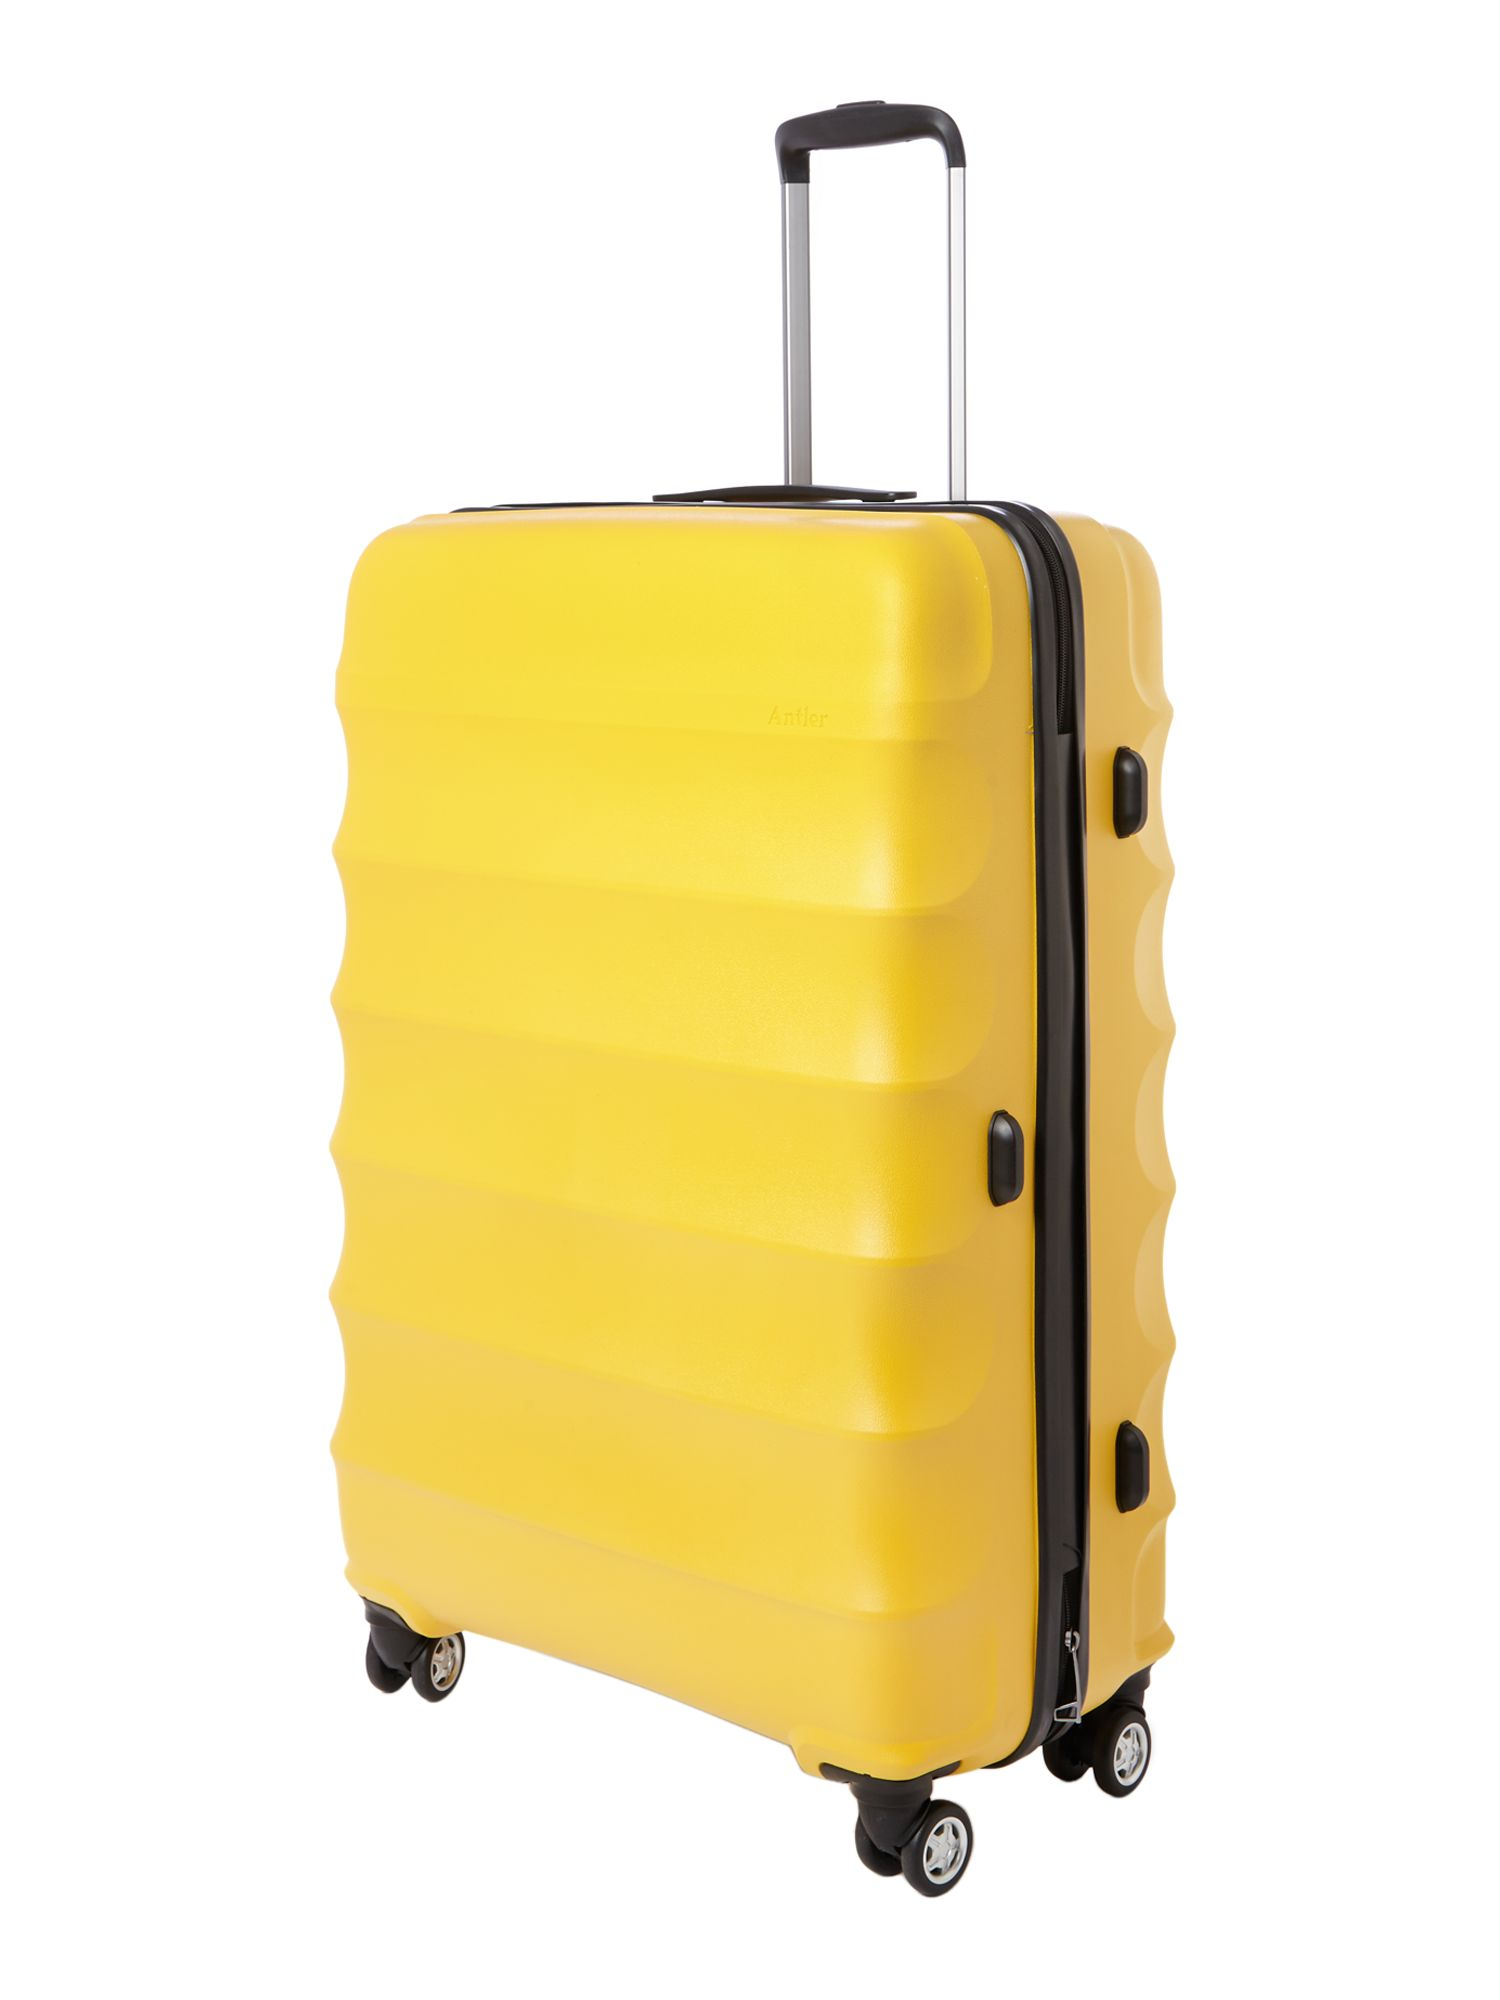 Juno 4 wheel yellow hard large rollercase